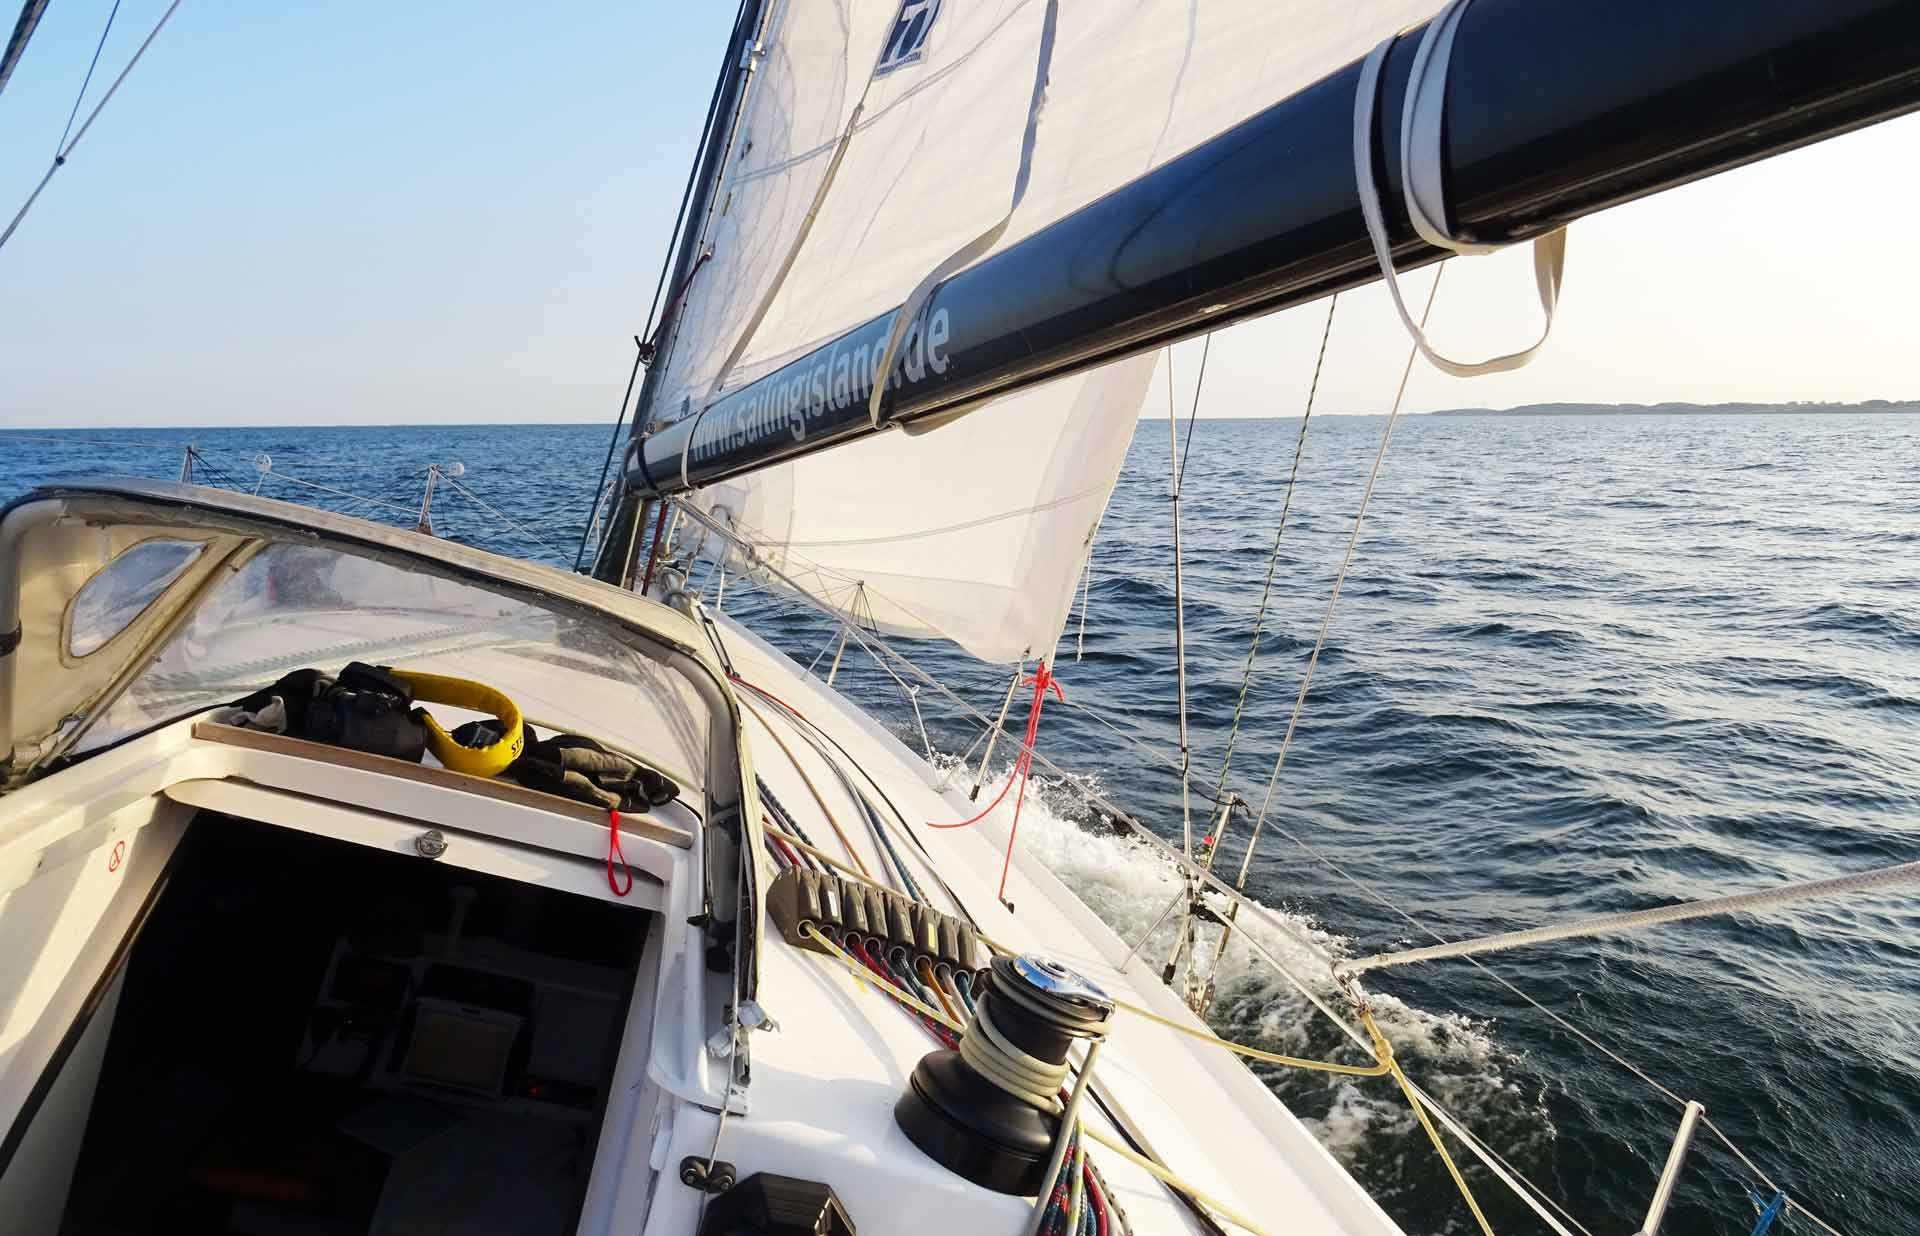 That´s so nice to sail again